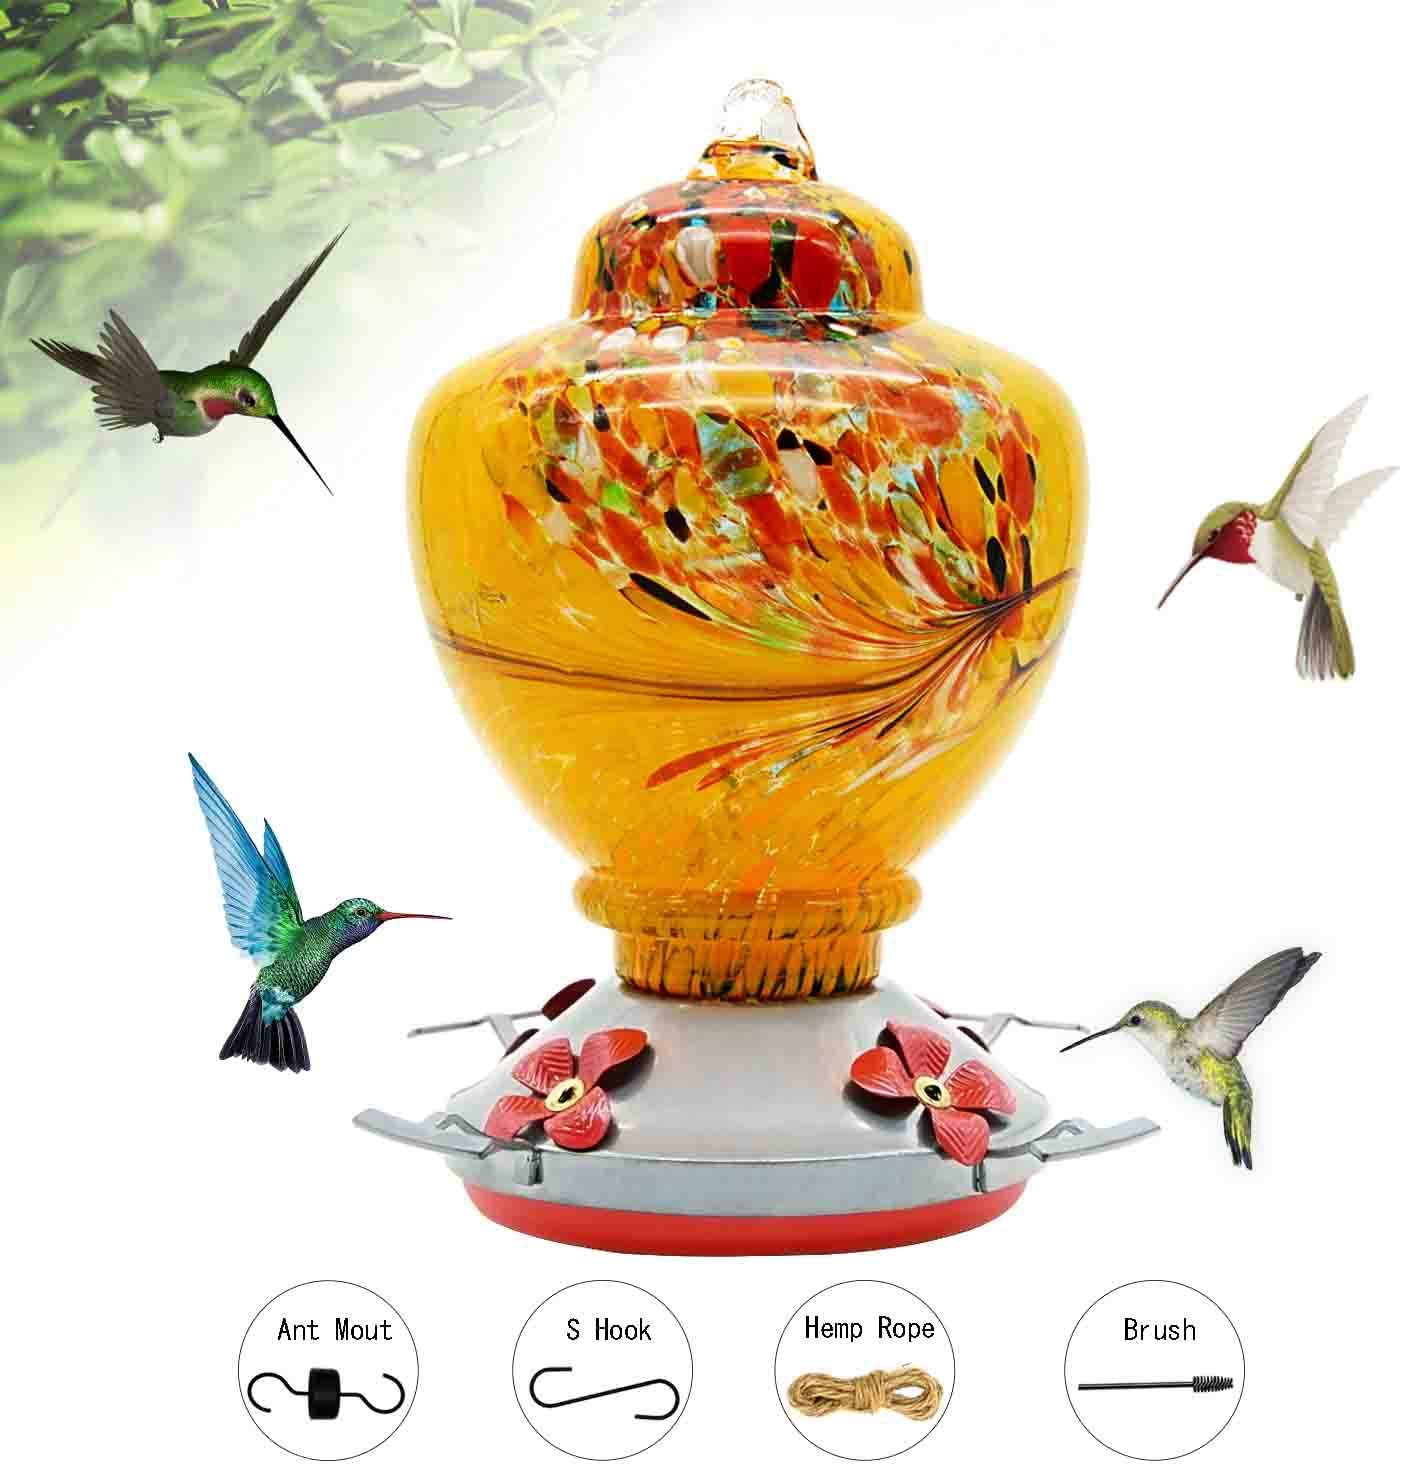 HARBORII Hummingbird Feeder Ant Guard for Window Garden Outdoors Humming Bird Feeders with Ant Moat, S Hook,Cleaning Brushes